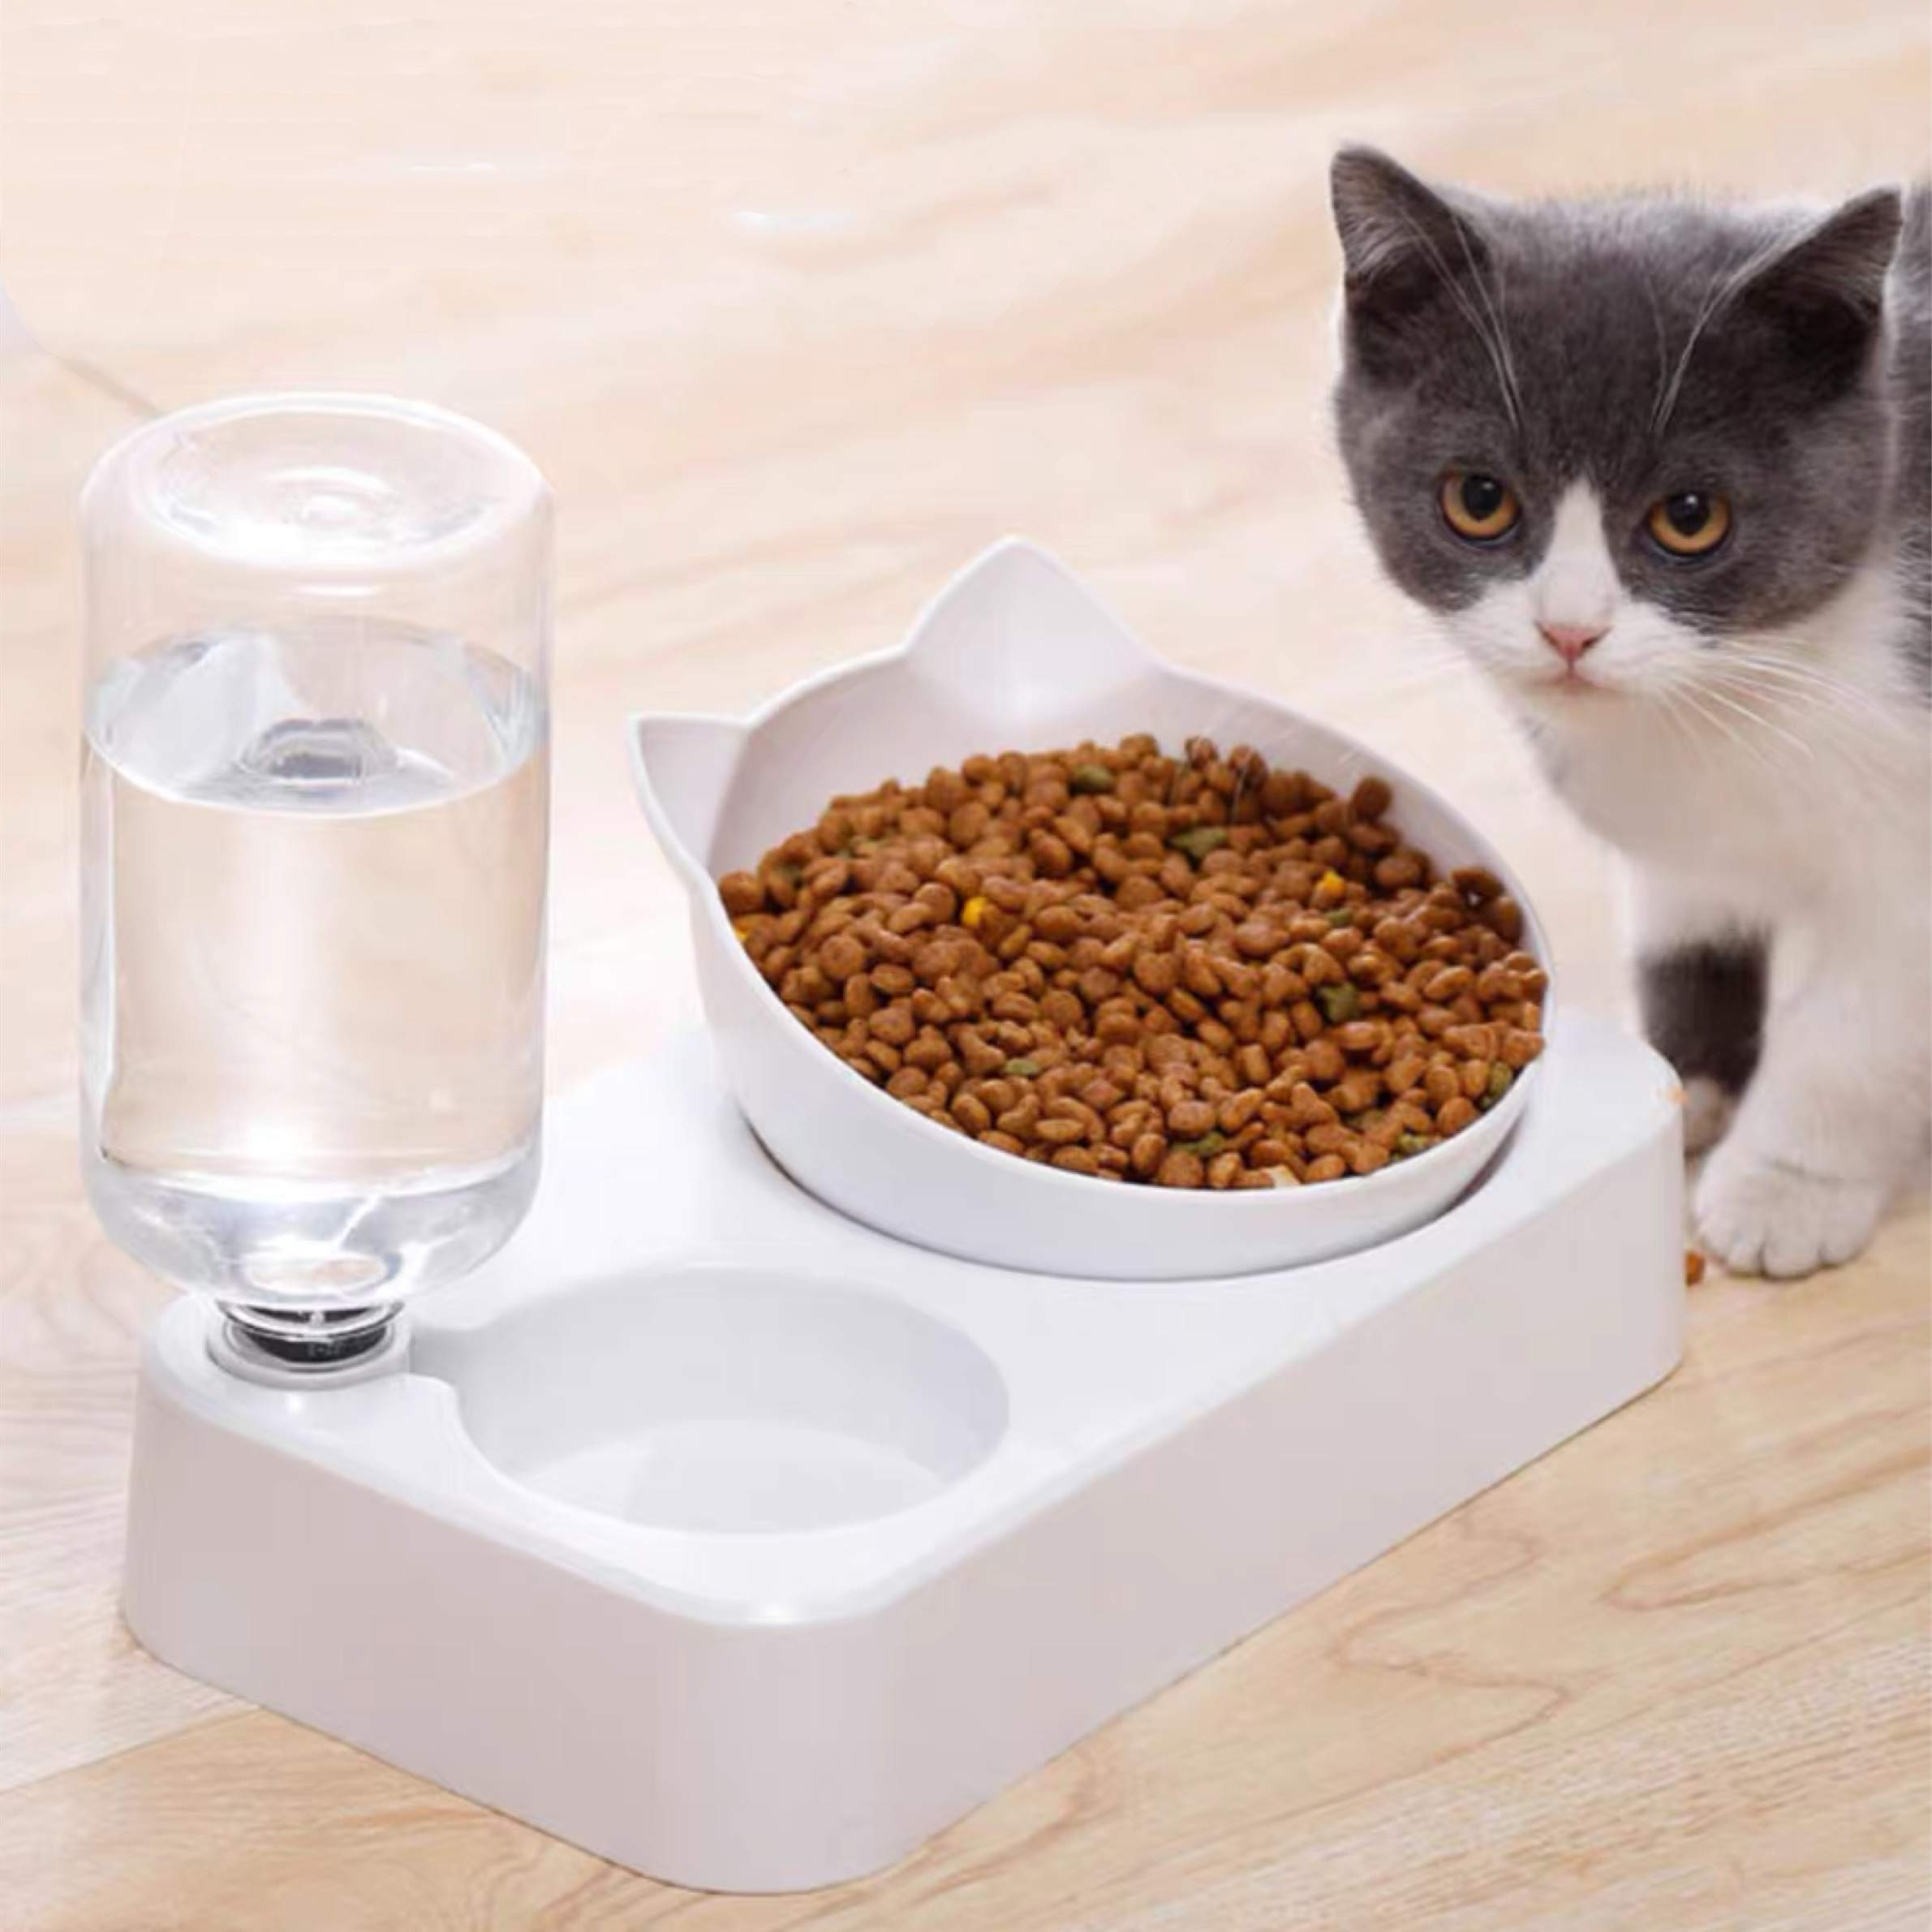 YEIRVE Cat Dog Bowls with Raised Stand - Anti-Vomiting, 15° Tilted Food and Water Bowl Set, Automatic Drinking Bowl, Healthy & Hygienic Feeder Bowls Bowl.